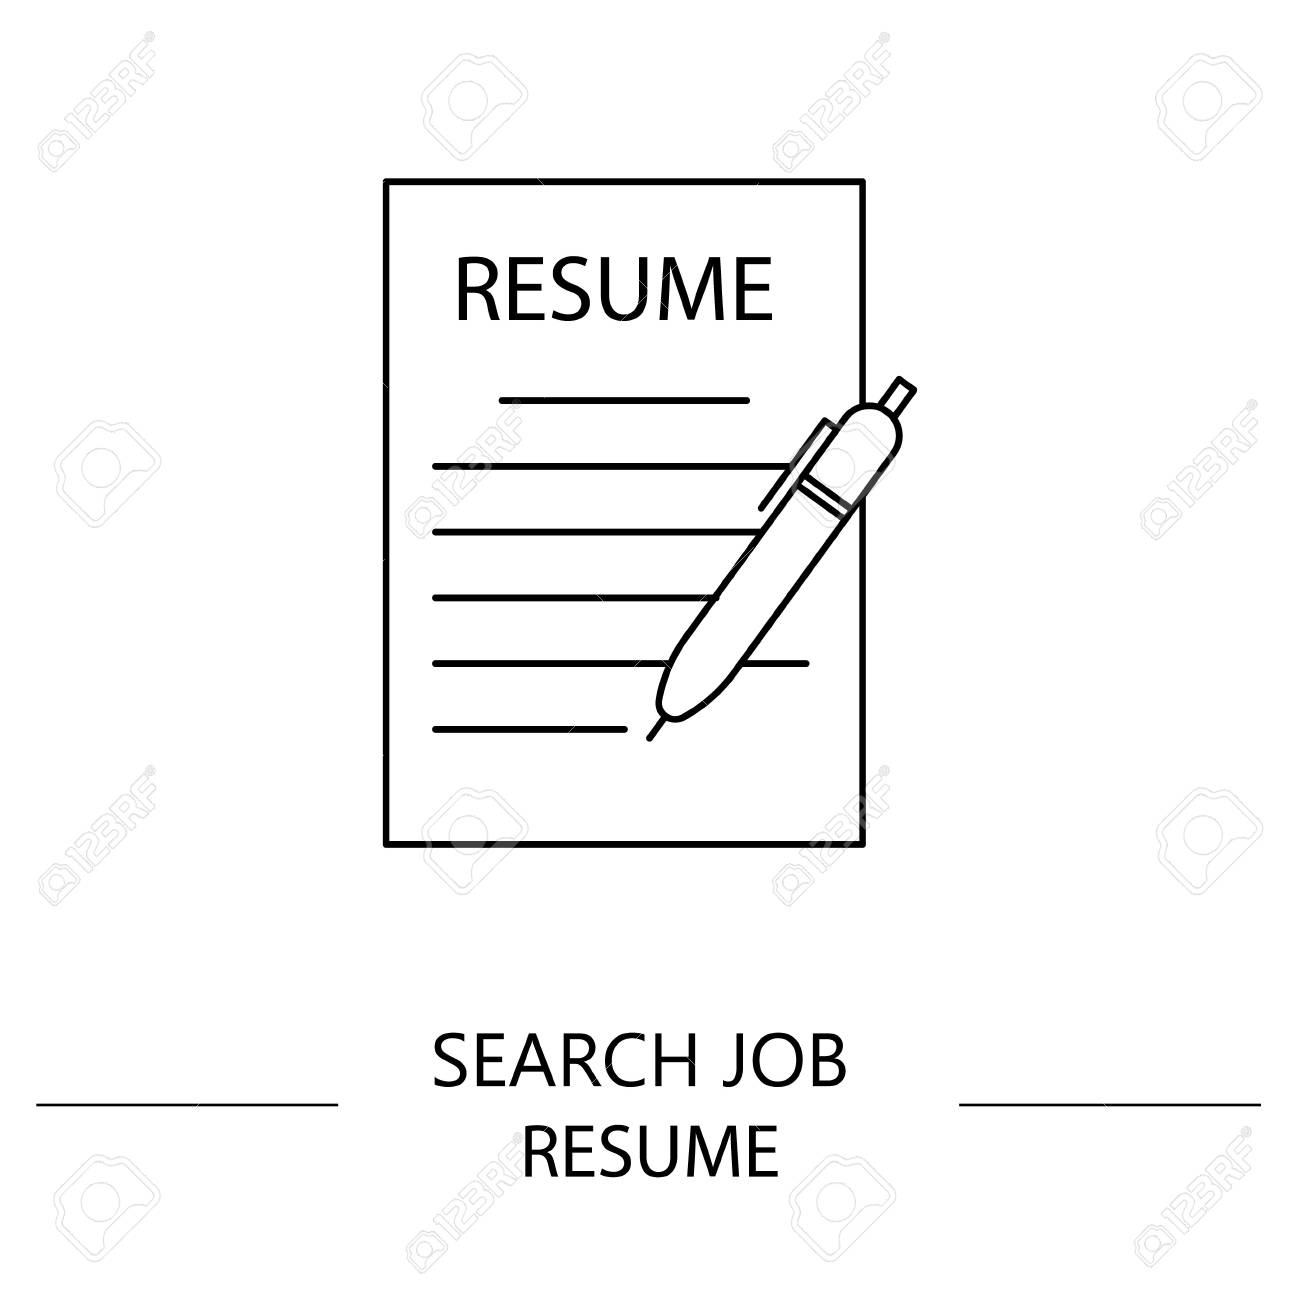 resume vector icon search job vector icon button for websites